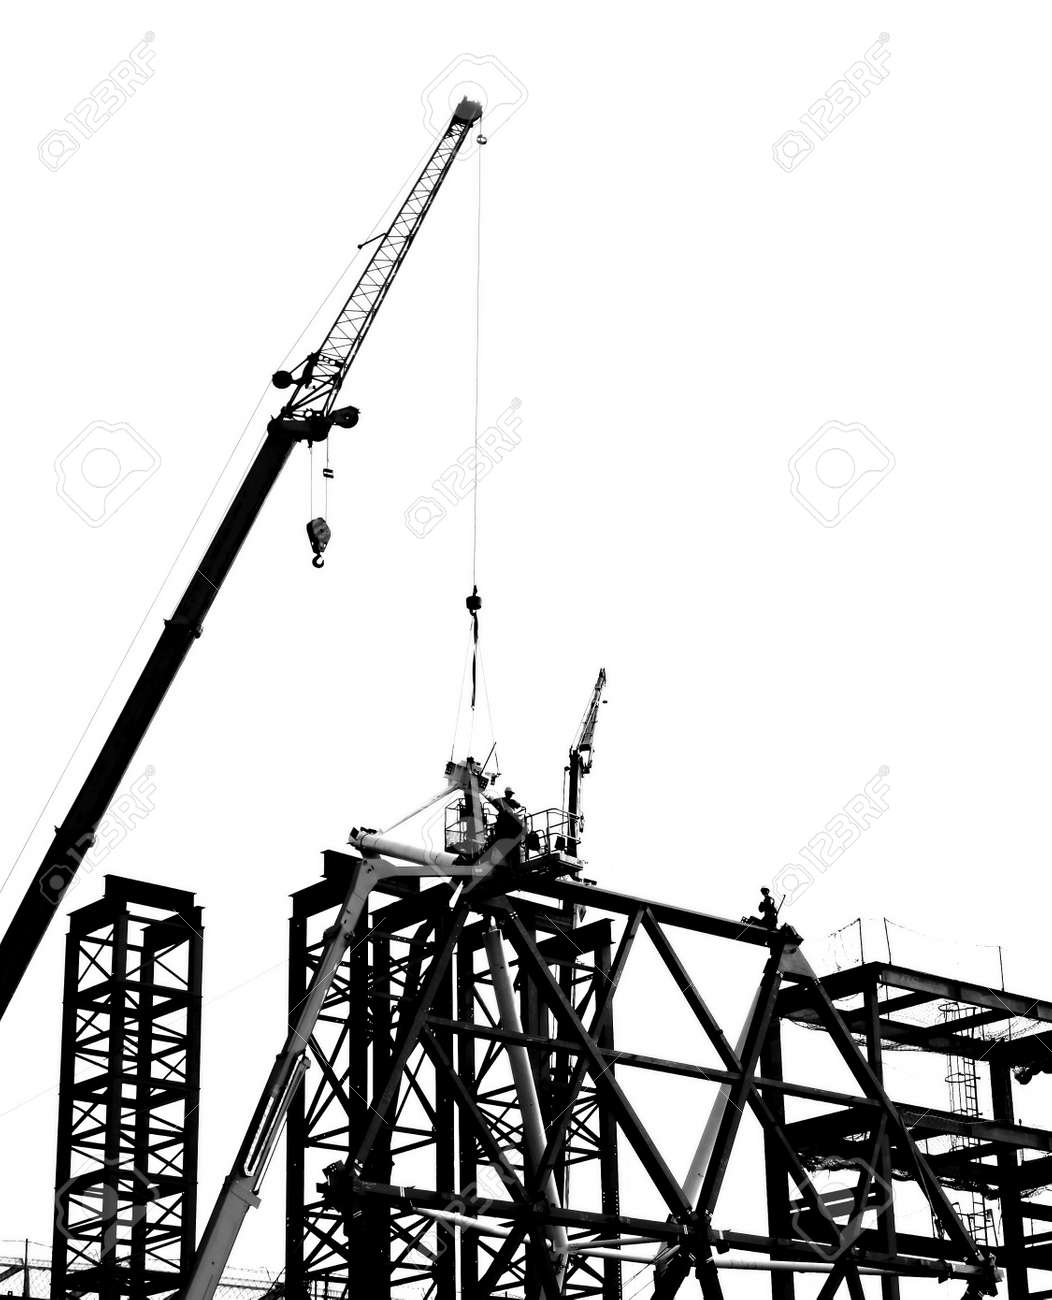 Steel construction with crane and workers in silhouette Stock Photo - 17888930